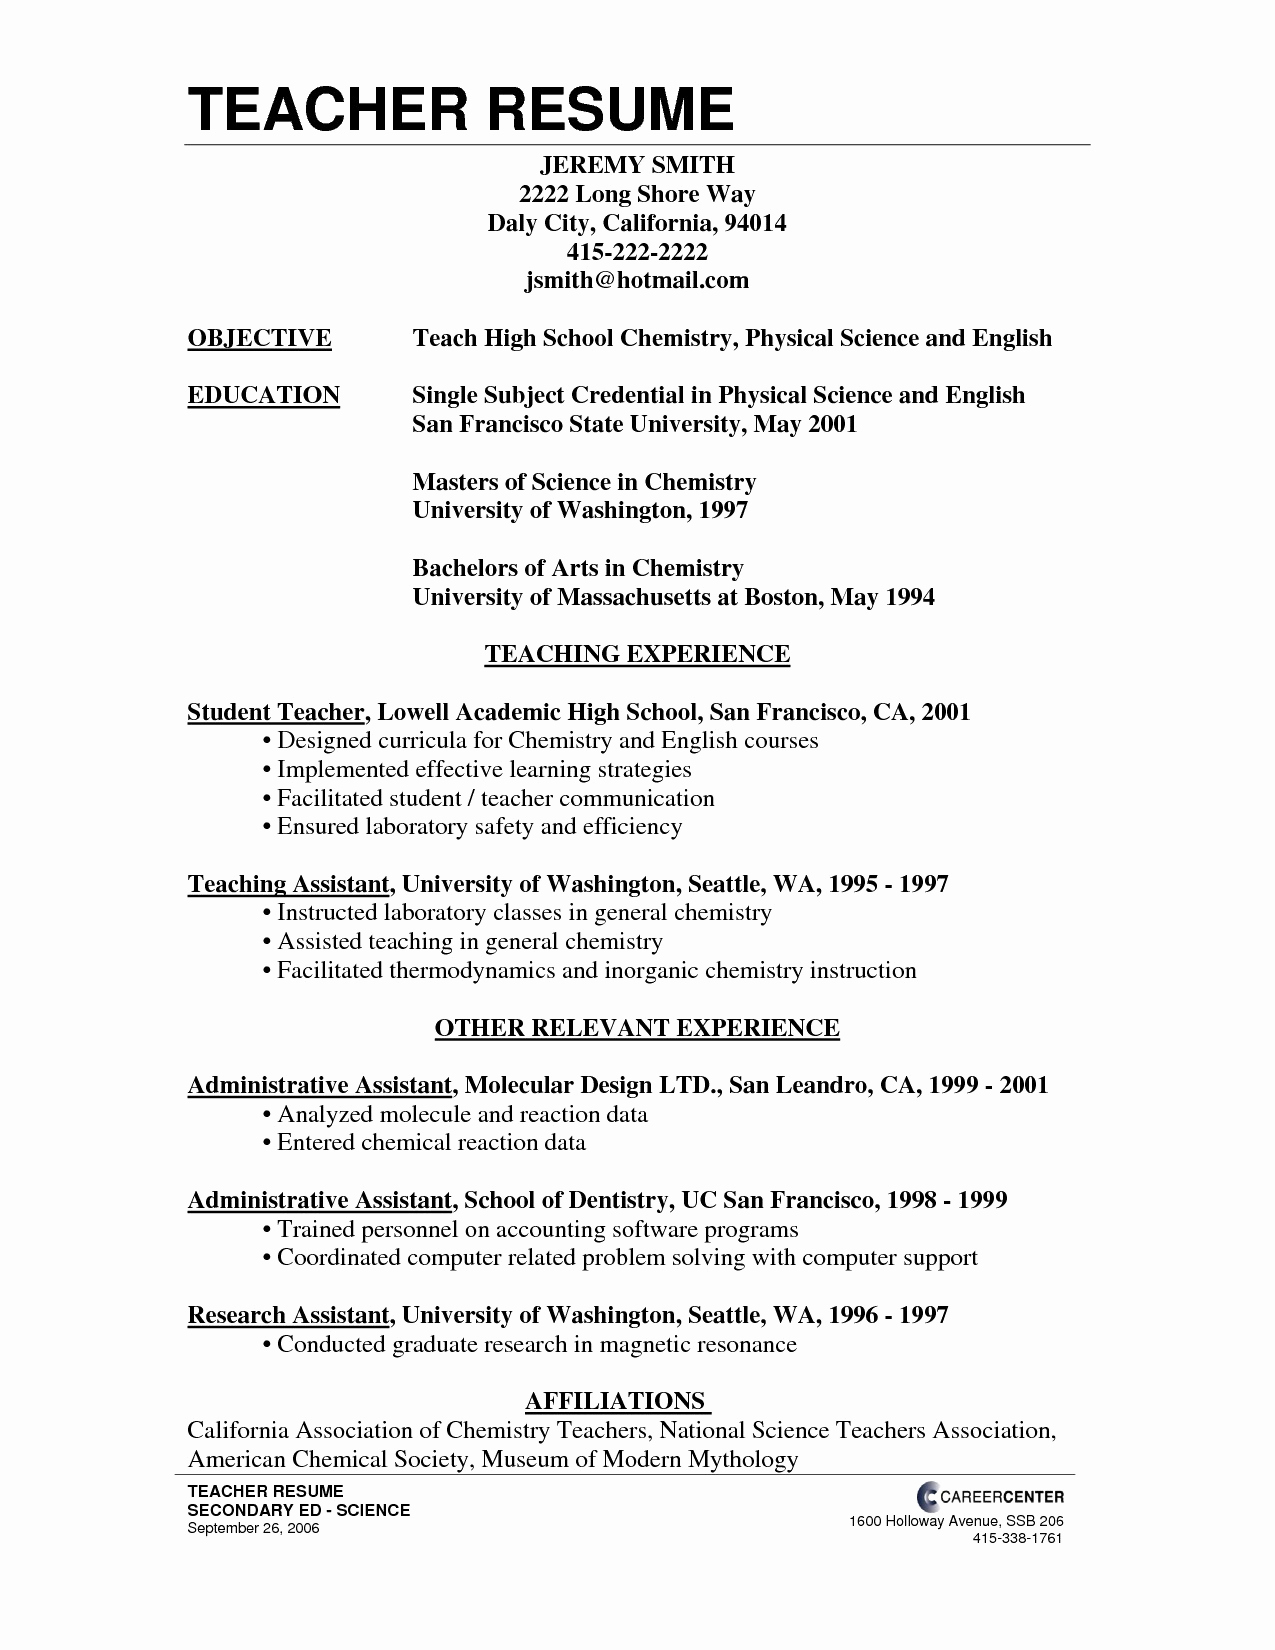 Cover Letter Template No Experience - Resume Cover Letter Example New Free Cover Letter Templates Examples